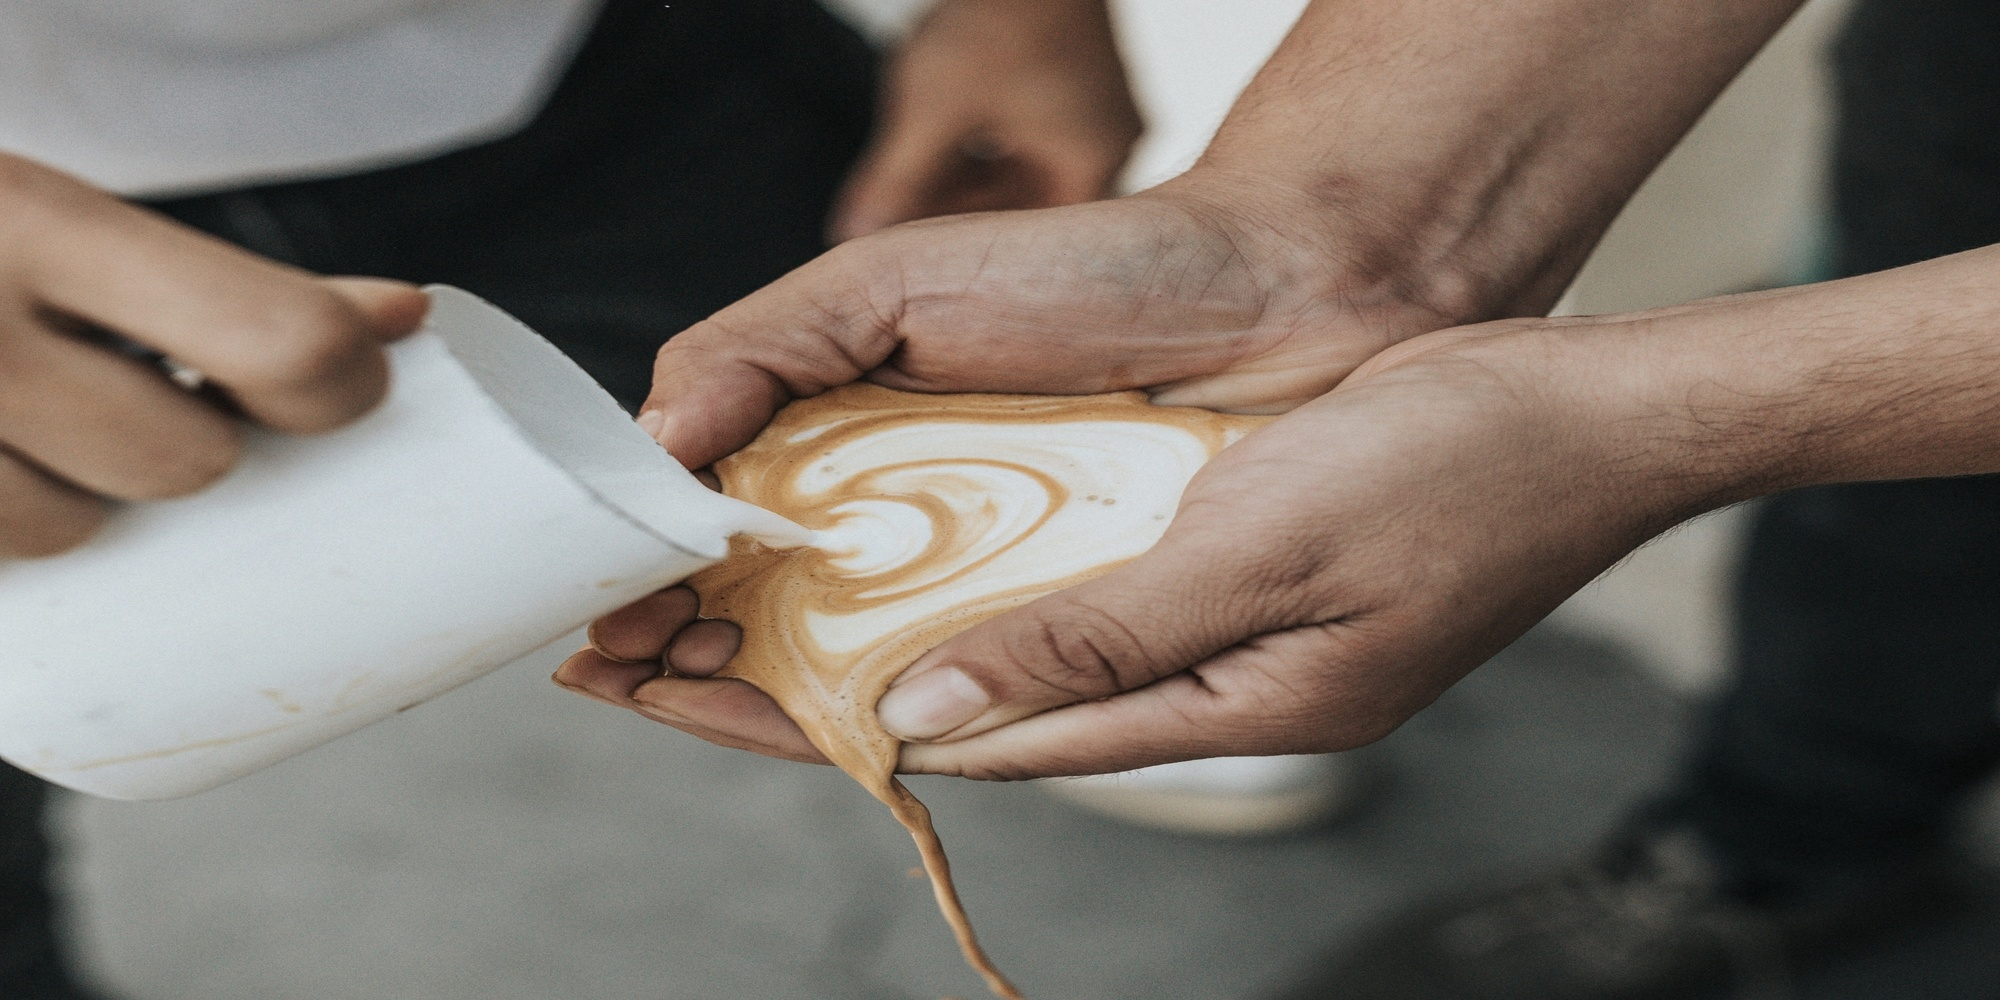 man pouring coffee into hands